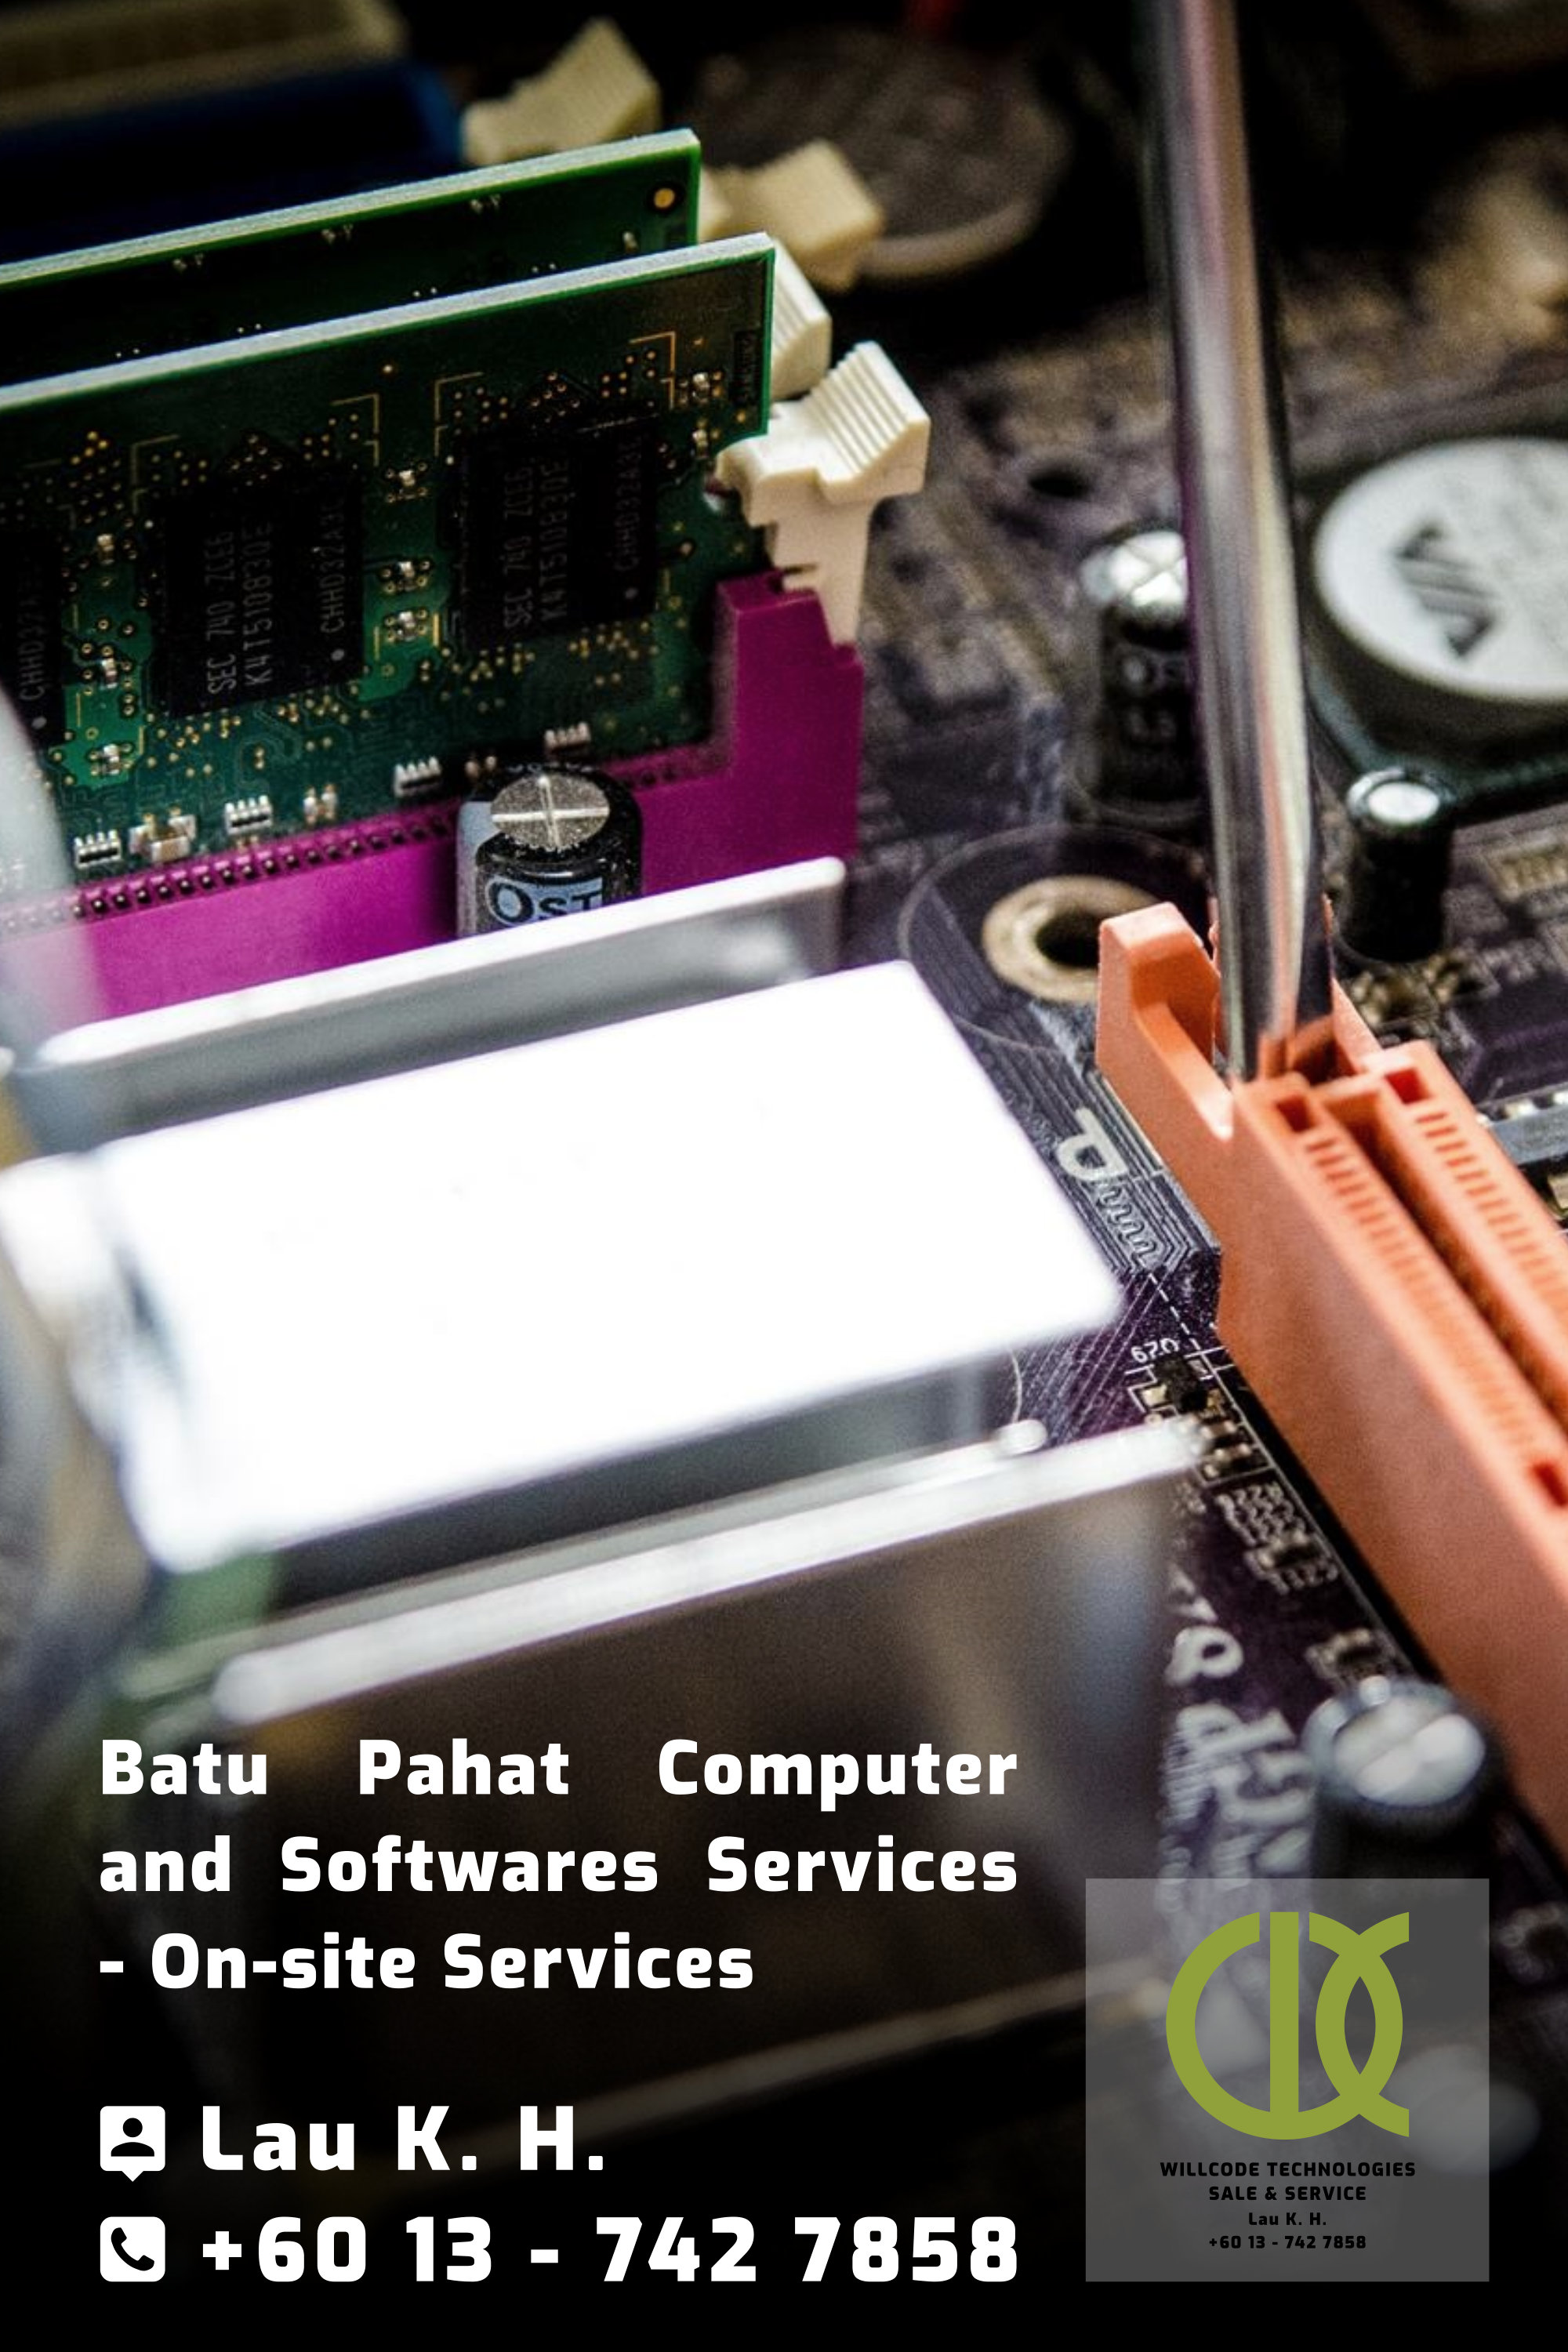 Batu Pahat Computer Services Computer Sales Softwares Services On-site Services Willcode Technologies Sale and Service Logo A01